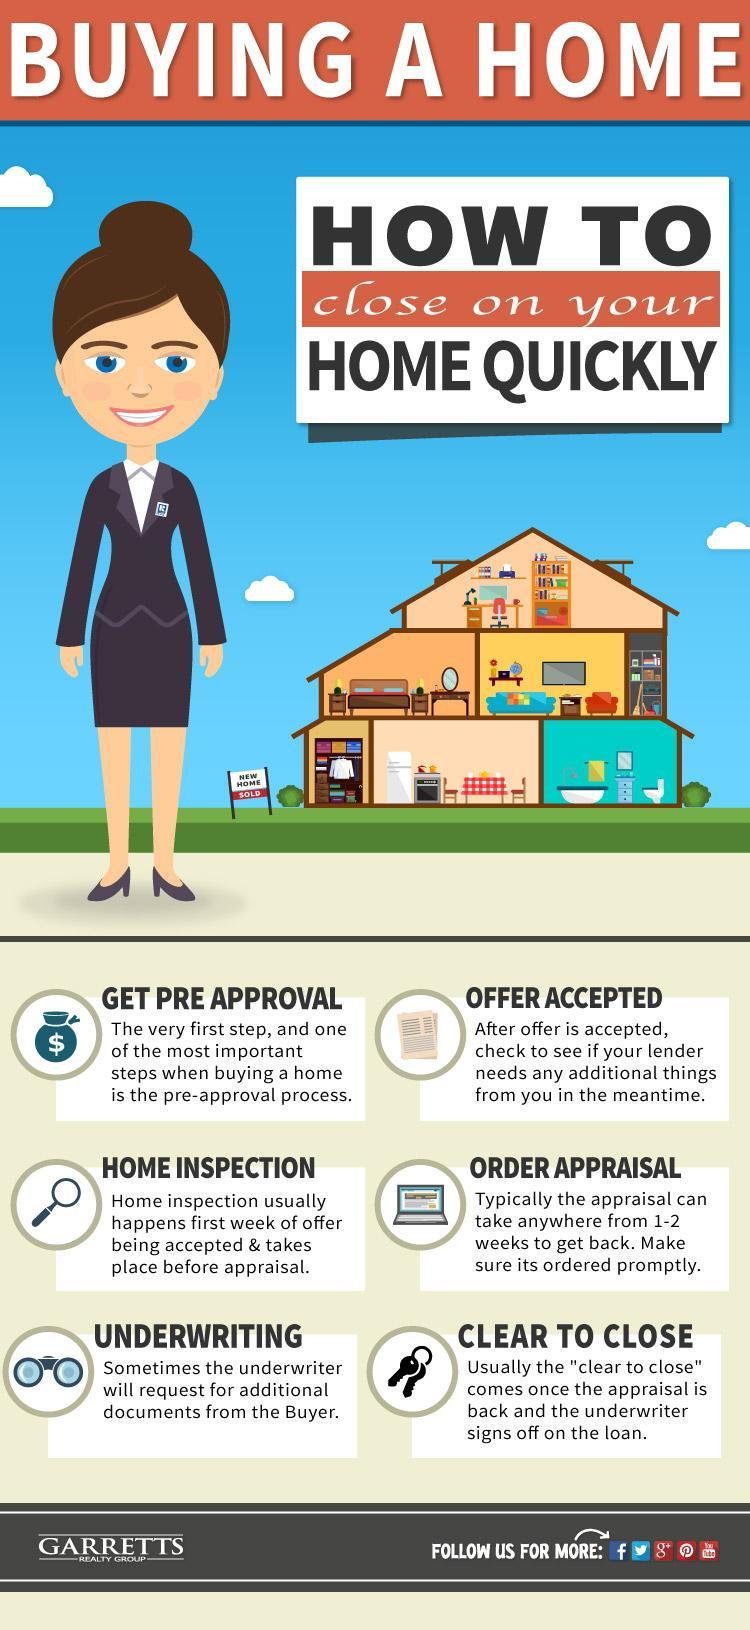 closing on a home quickly infographic